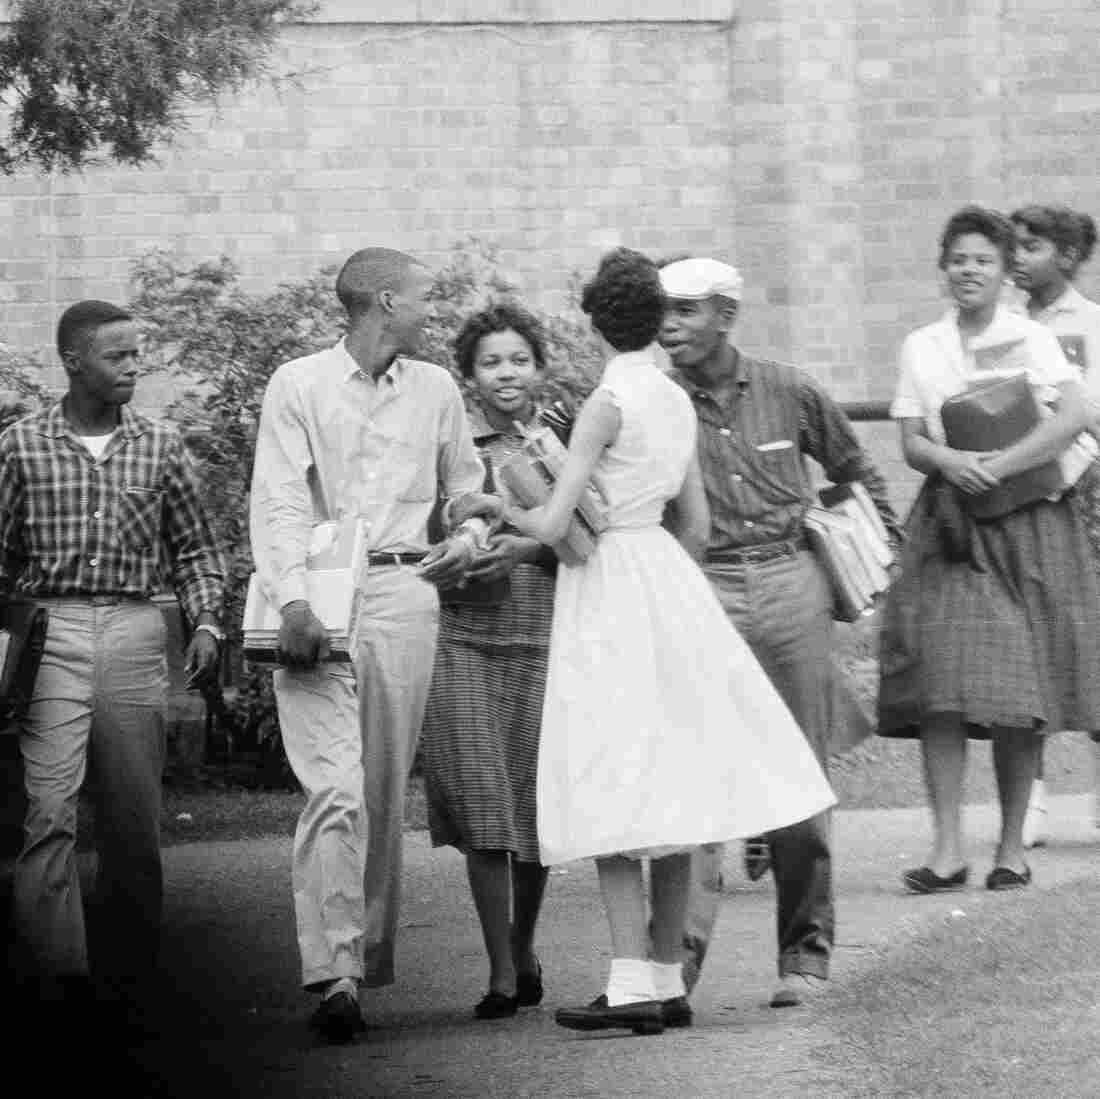 Decades Later, Desegregation Still On The Docket In Little Rock